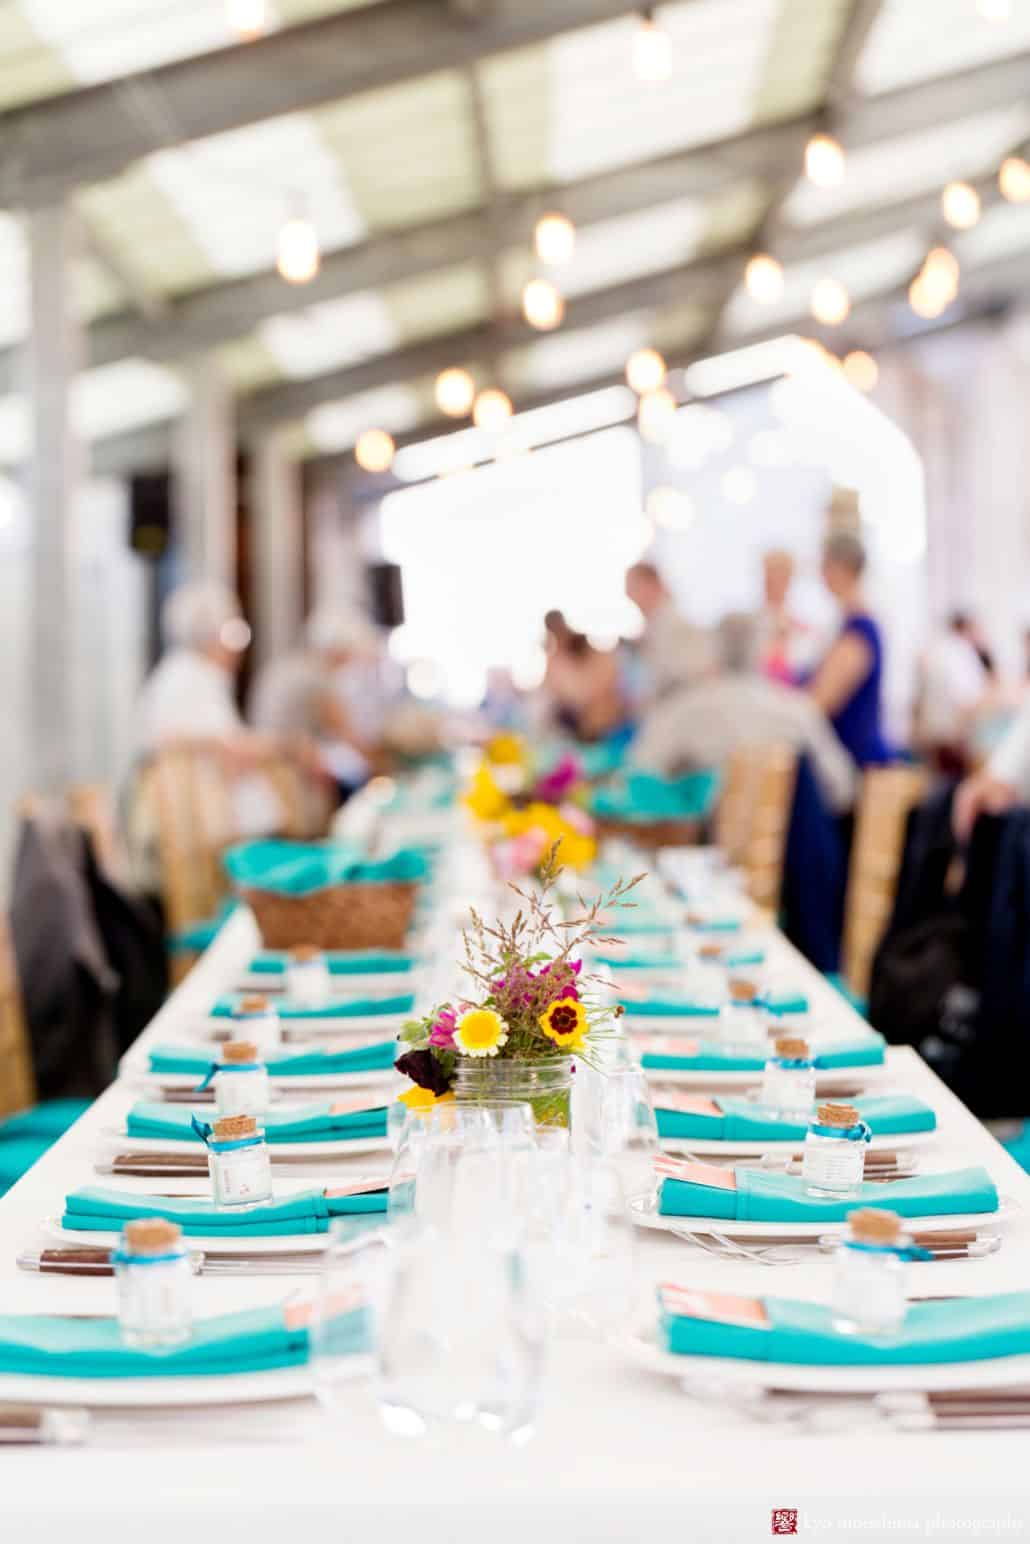 Party table with teal napkins and wildflowers at Brooklyn Grange summer wedding reception